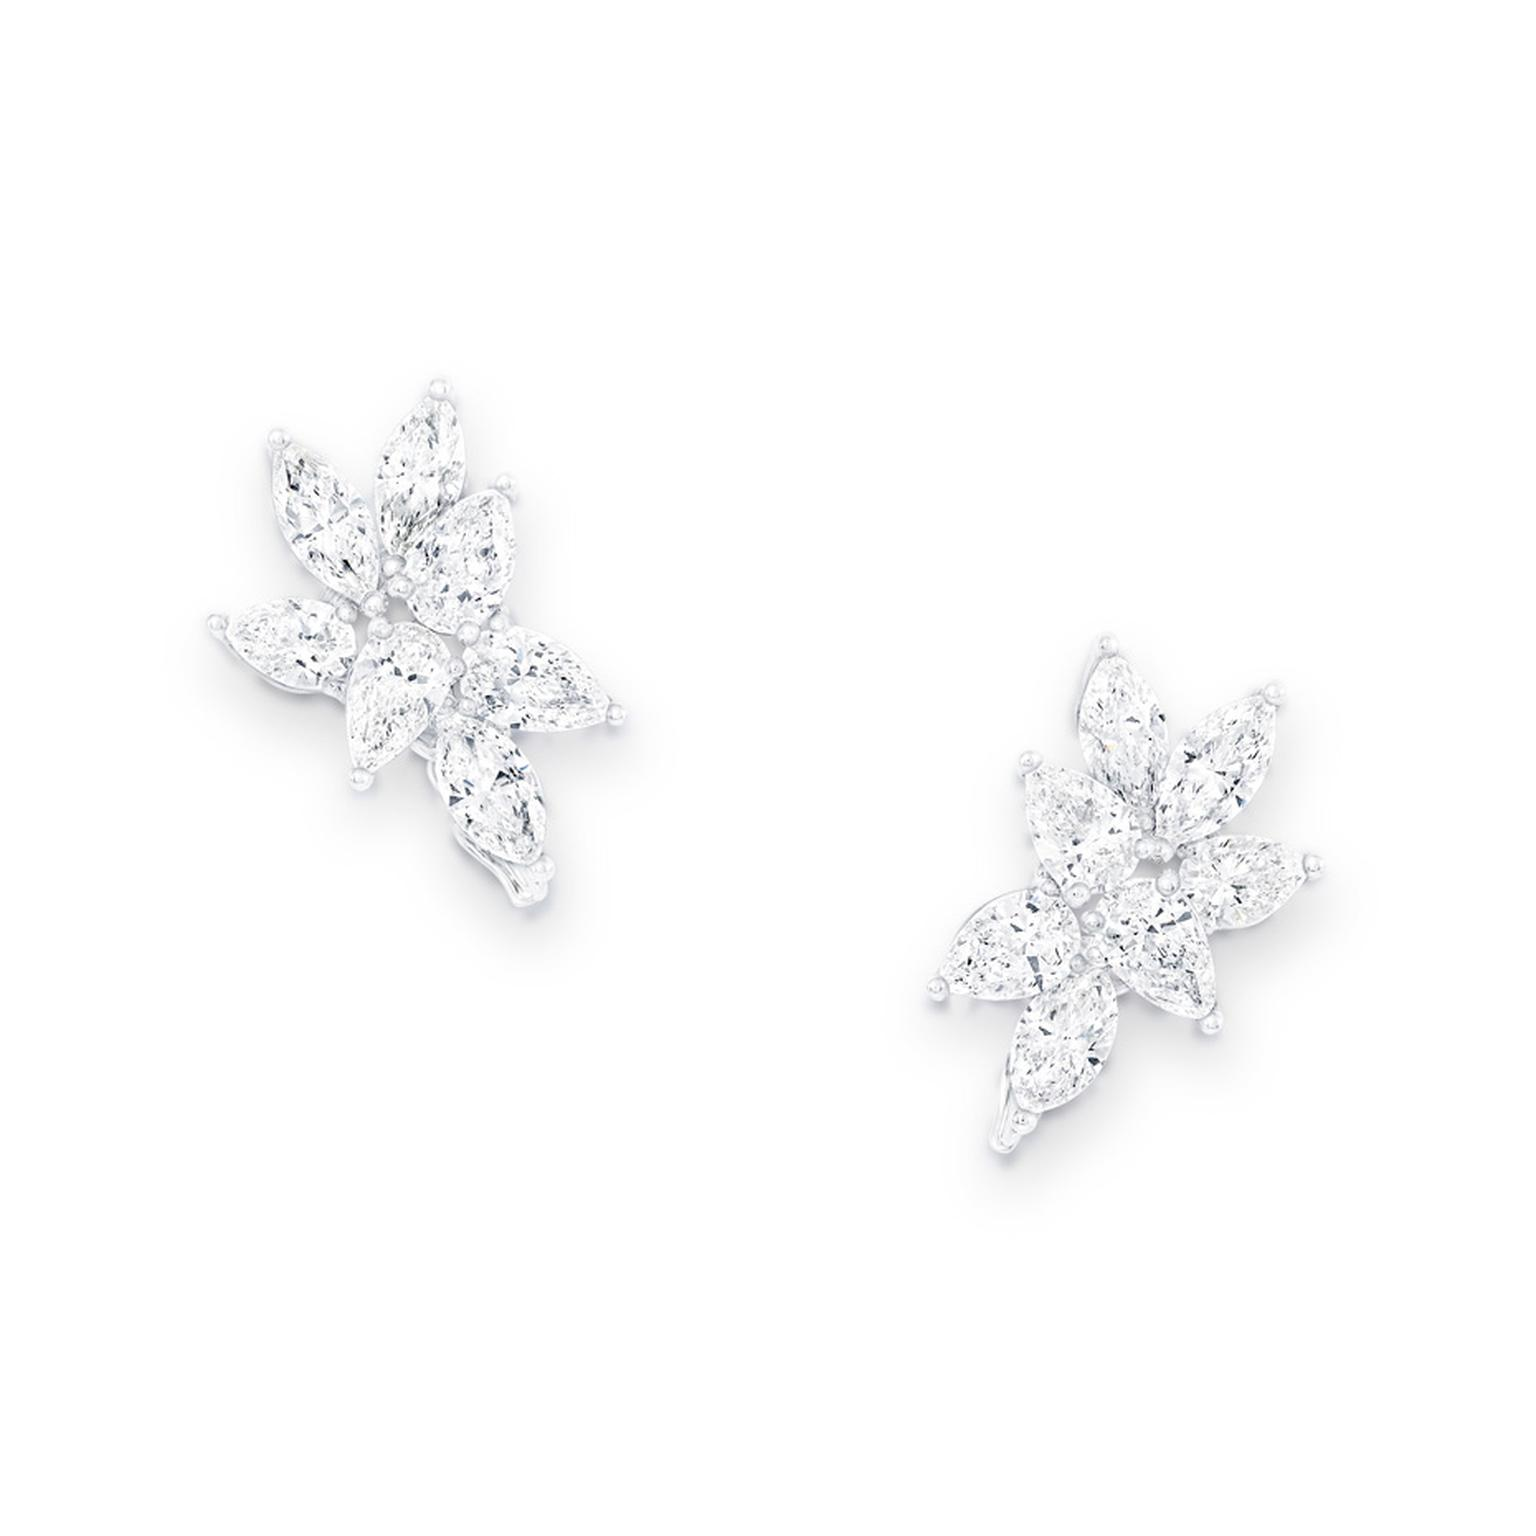 Graff Rhythm collection platinum earrings featuring pear and marquise-shaped diamonds